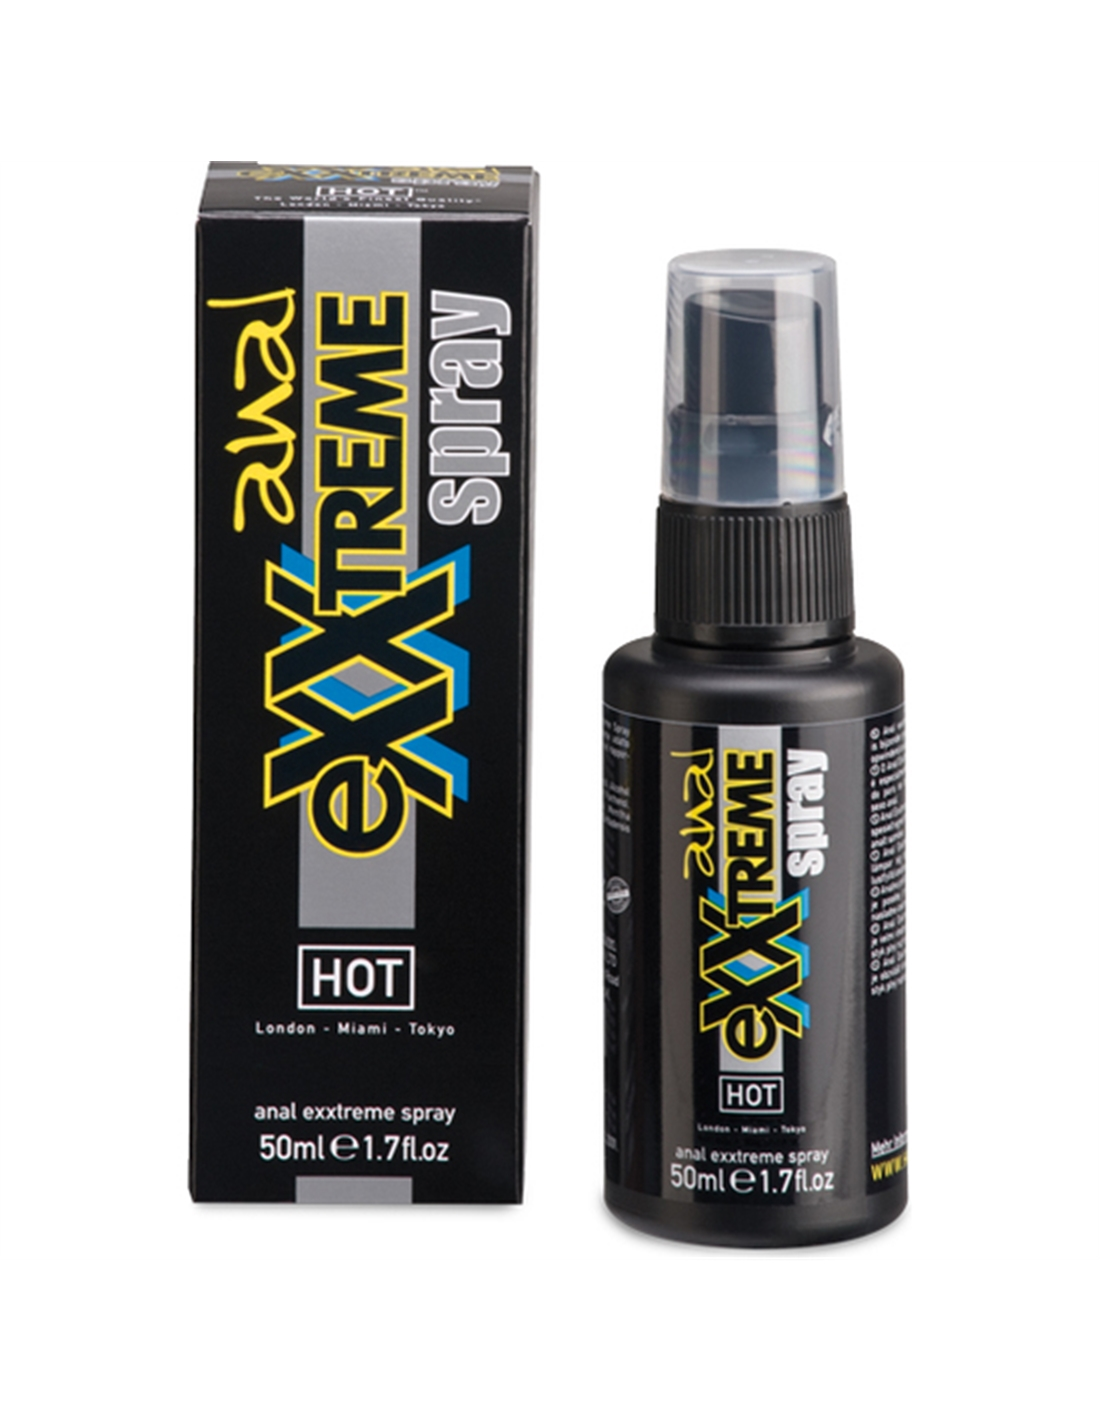 Spray Anestesiante Anal Hot Anal Exxtreme - 50ml - PR2010299875